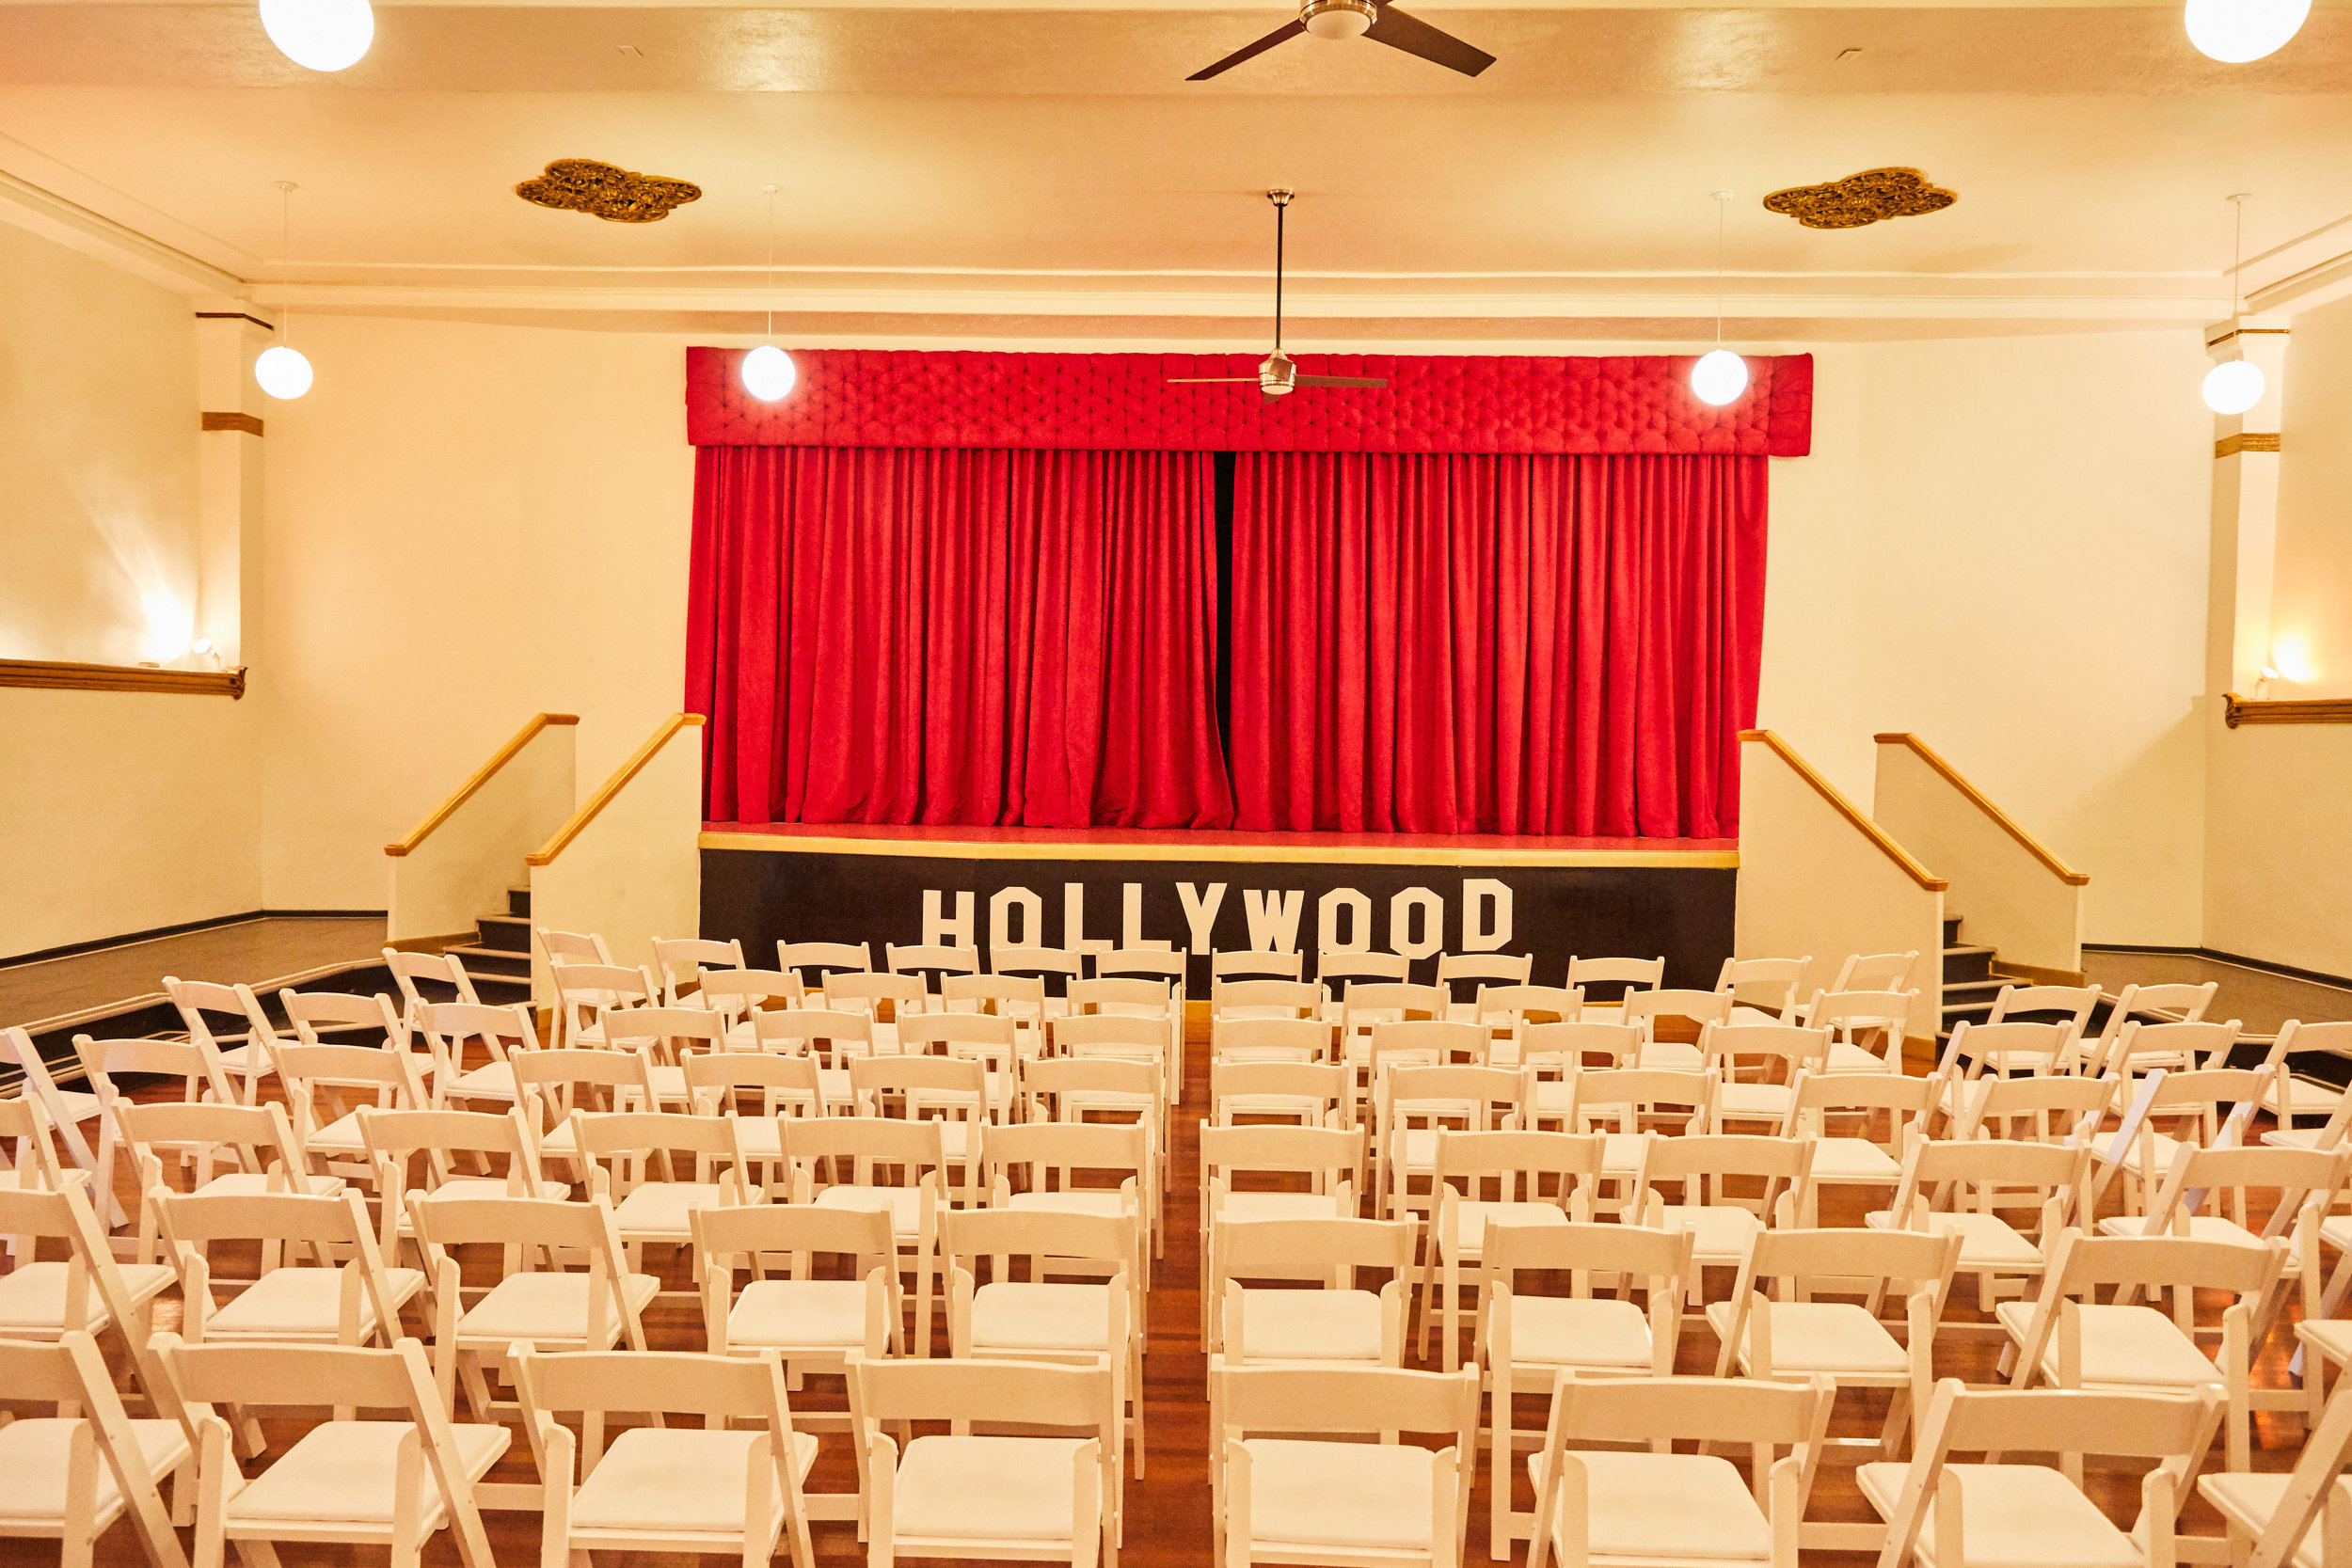 HOLLYWOOD THEATER - 3,183 sq. ft. | Capacity: 157